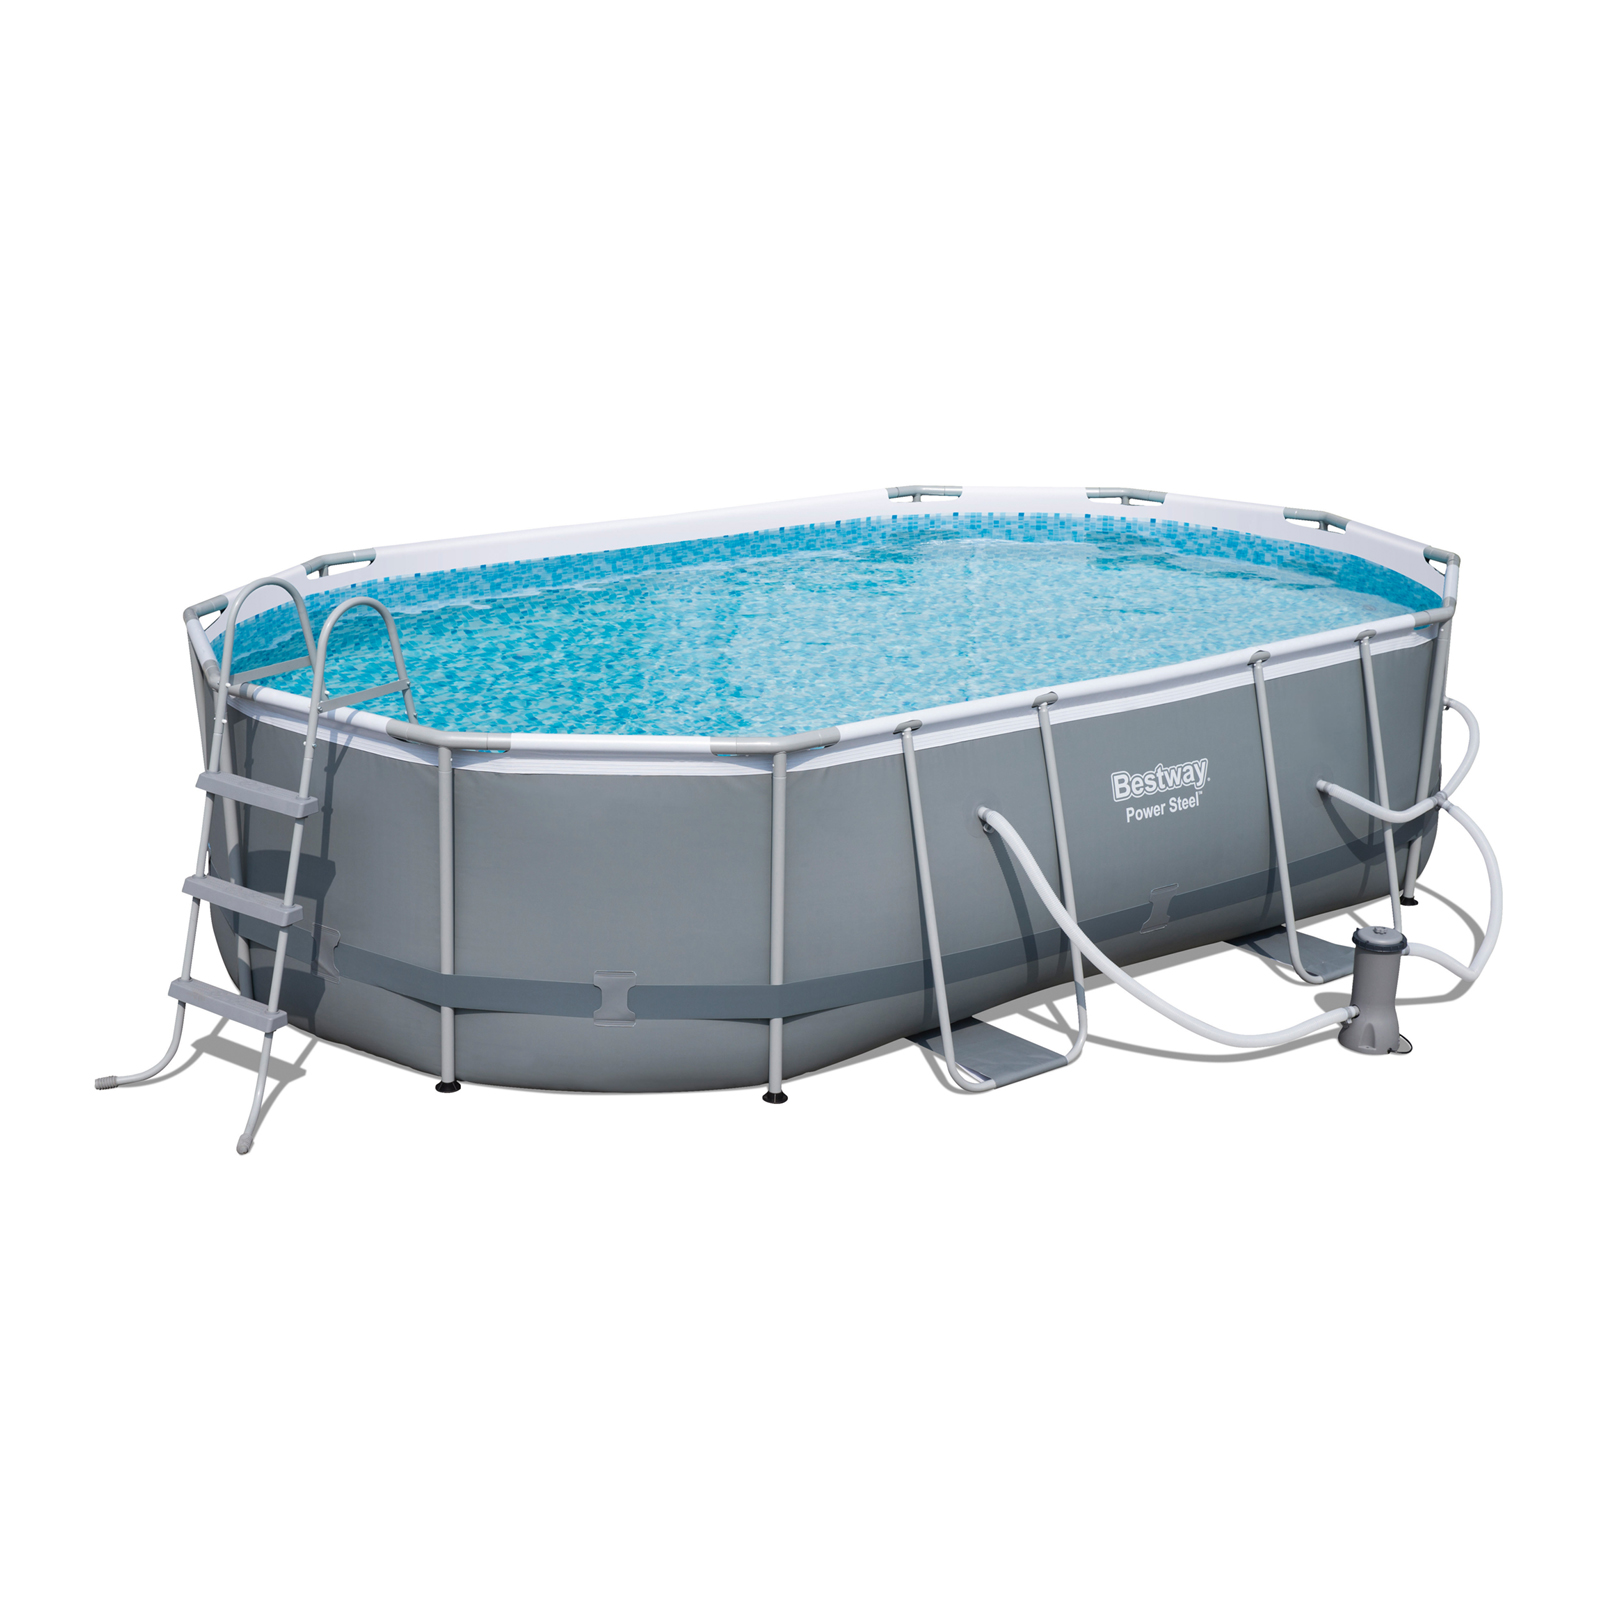 Bestway Pool Abdeckung Oval Bestway Power Steel 16 Foot X 10 Foot X 42 Inch Oval Frame